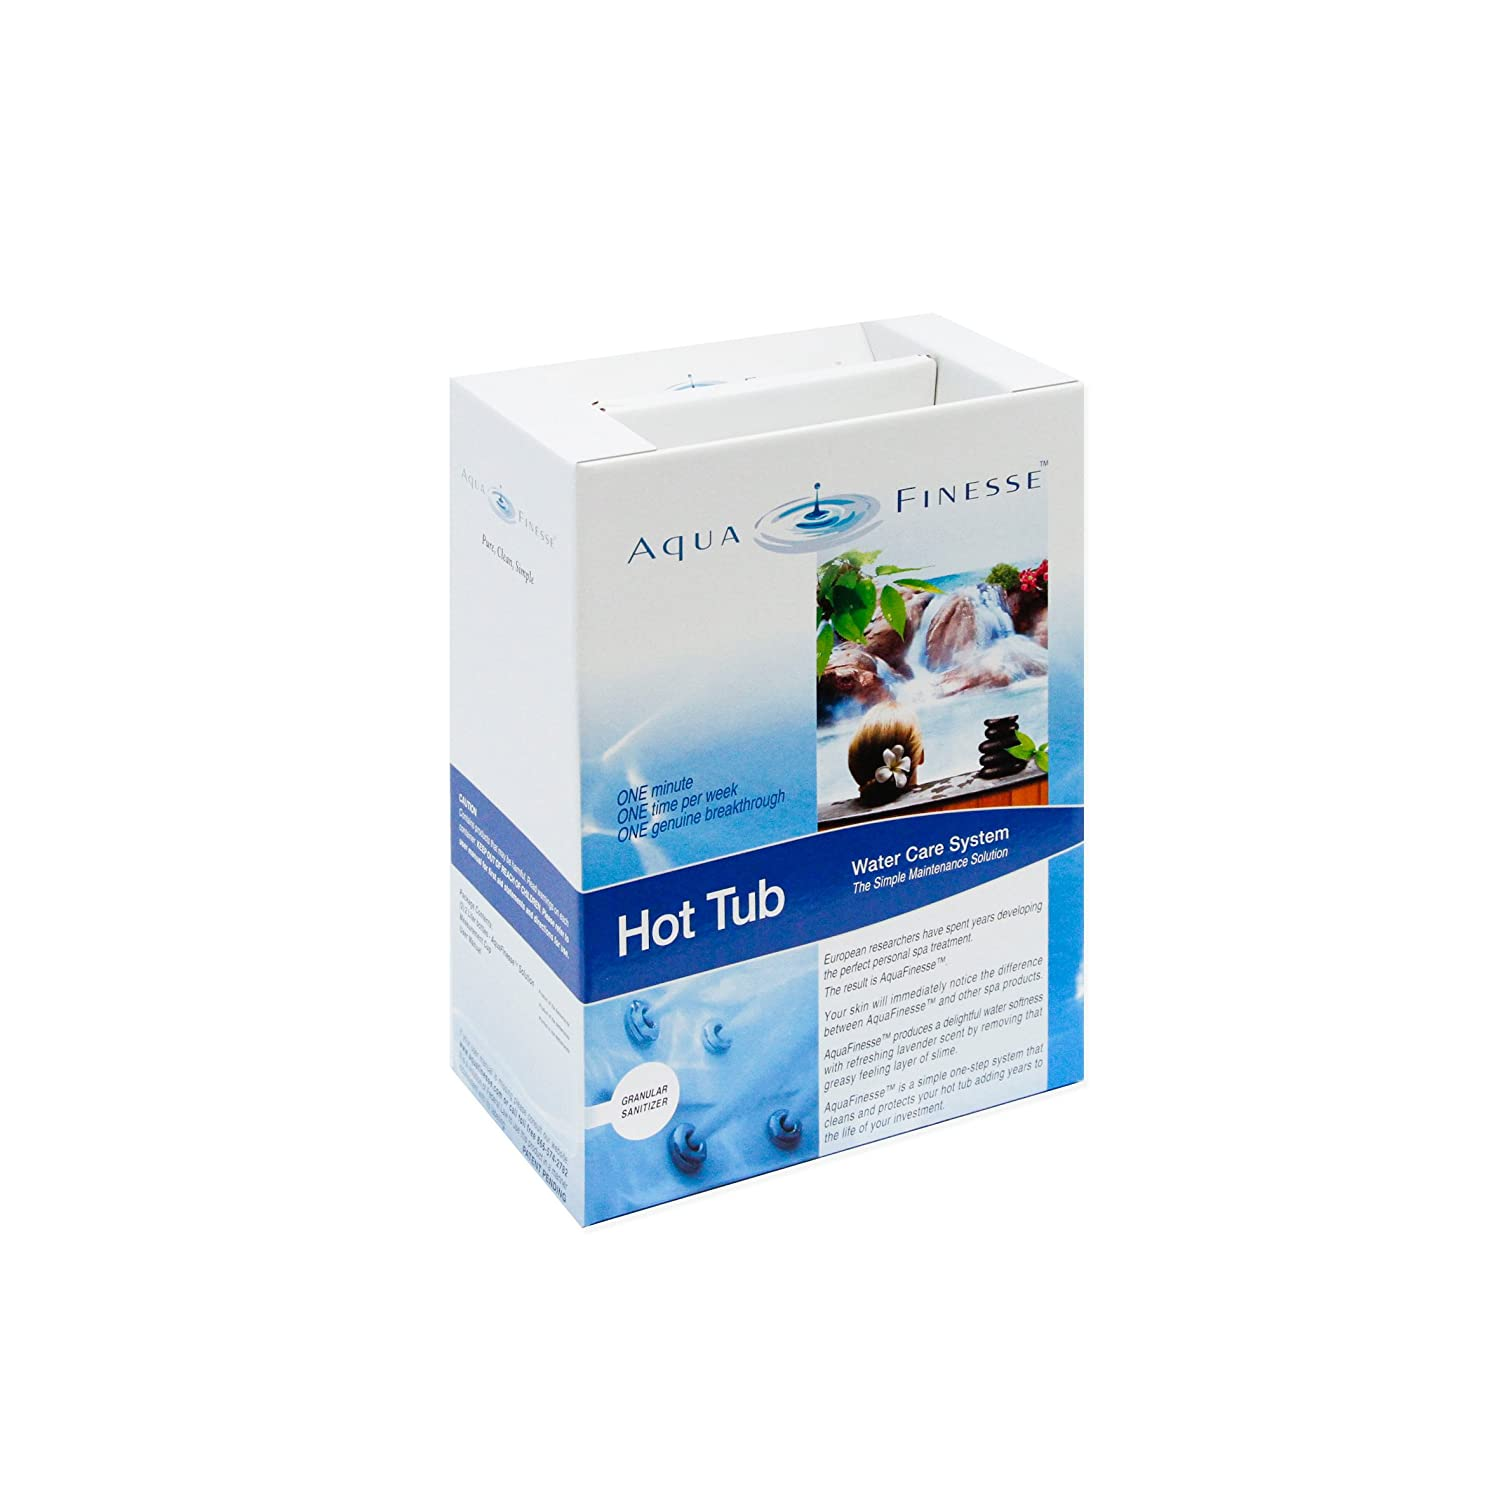 Amazon.com : AquaFinesse Hot Tube Water Care Kit -Trichlor (Tabs ...